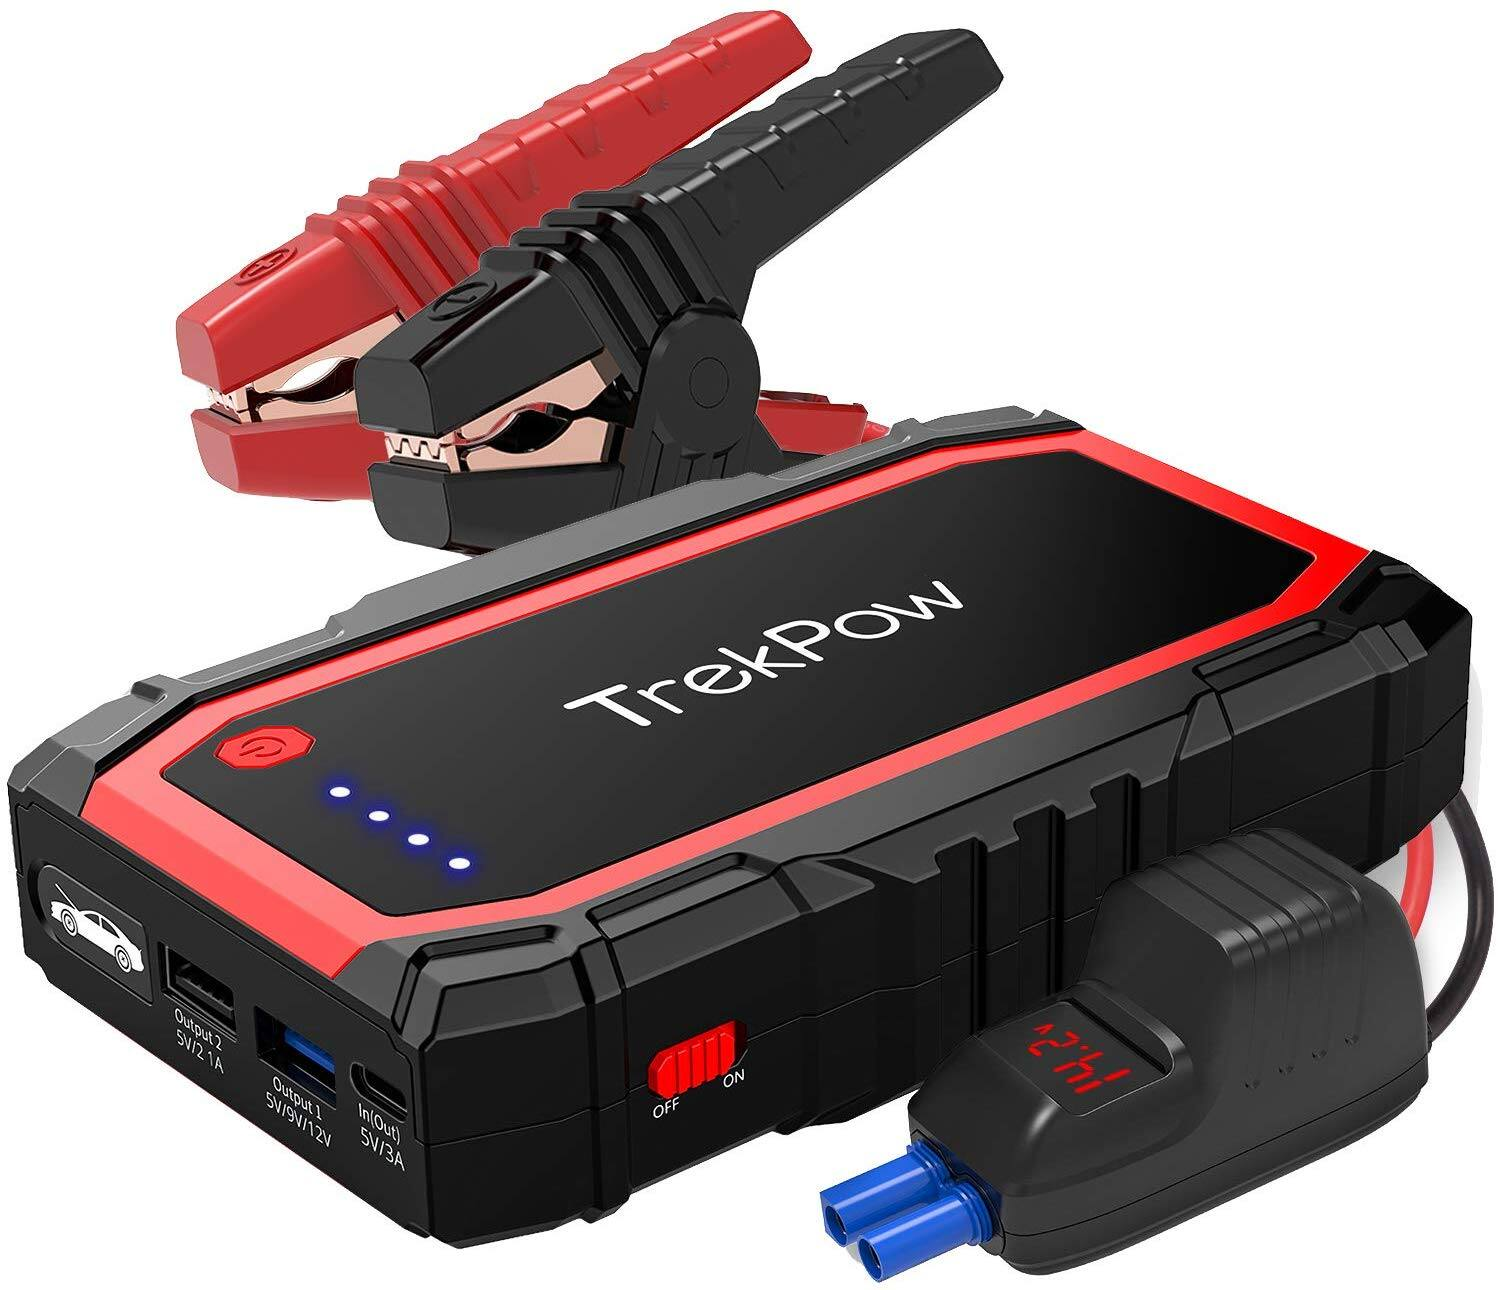 Portable Car Jump Starter with USB Quick Charge 3.0 $36.58